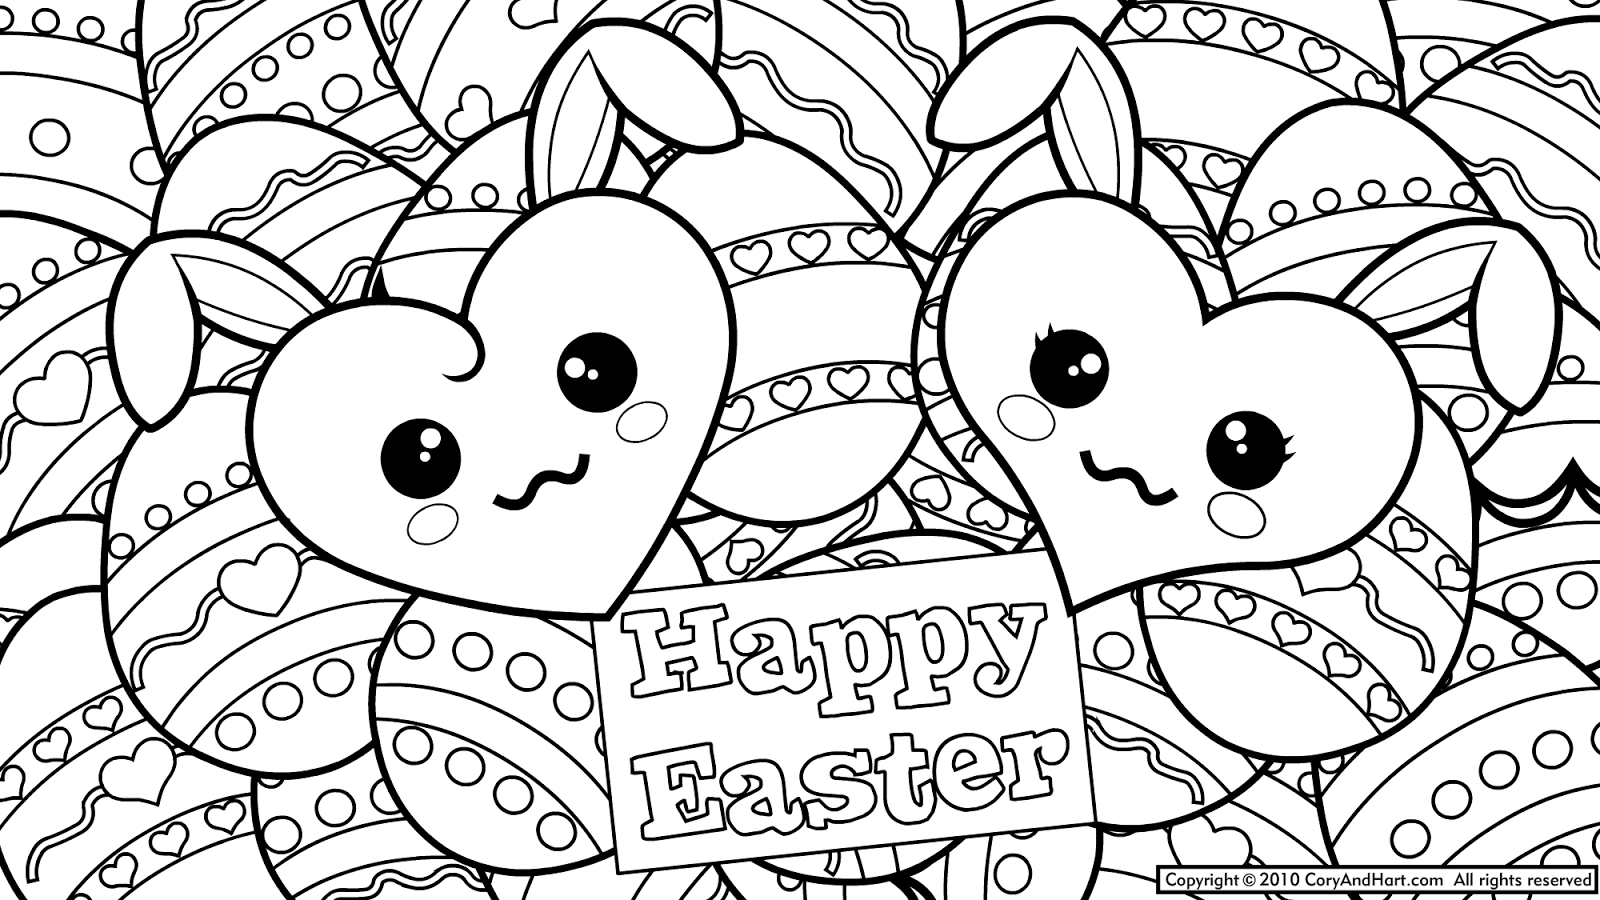 Mosaic Coloring Pages To Print | Easter coloring pages Printable 5 ...